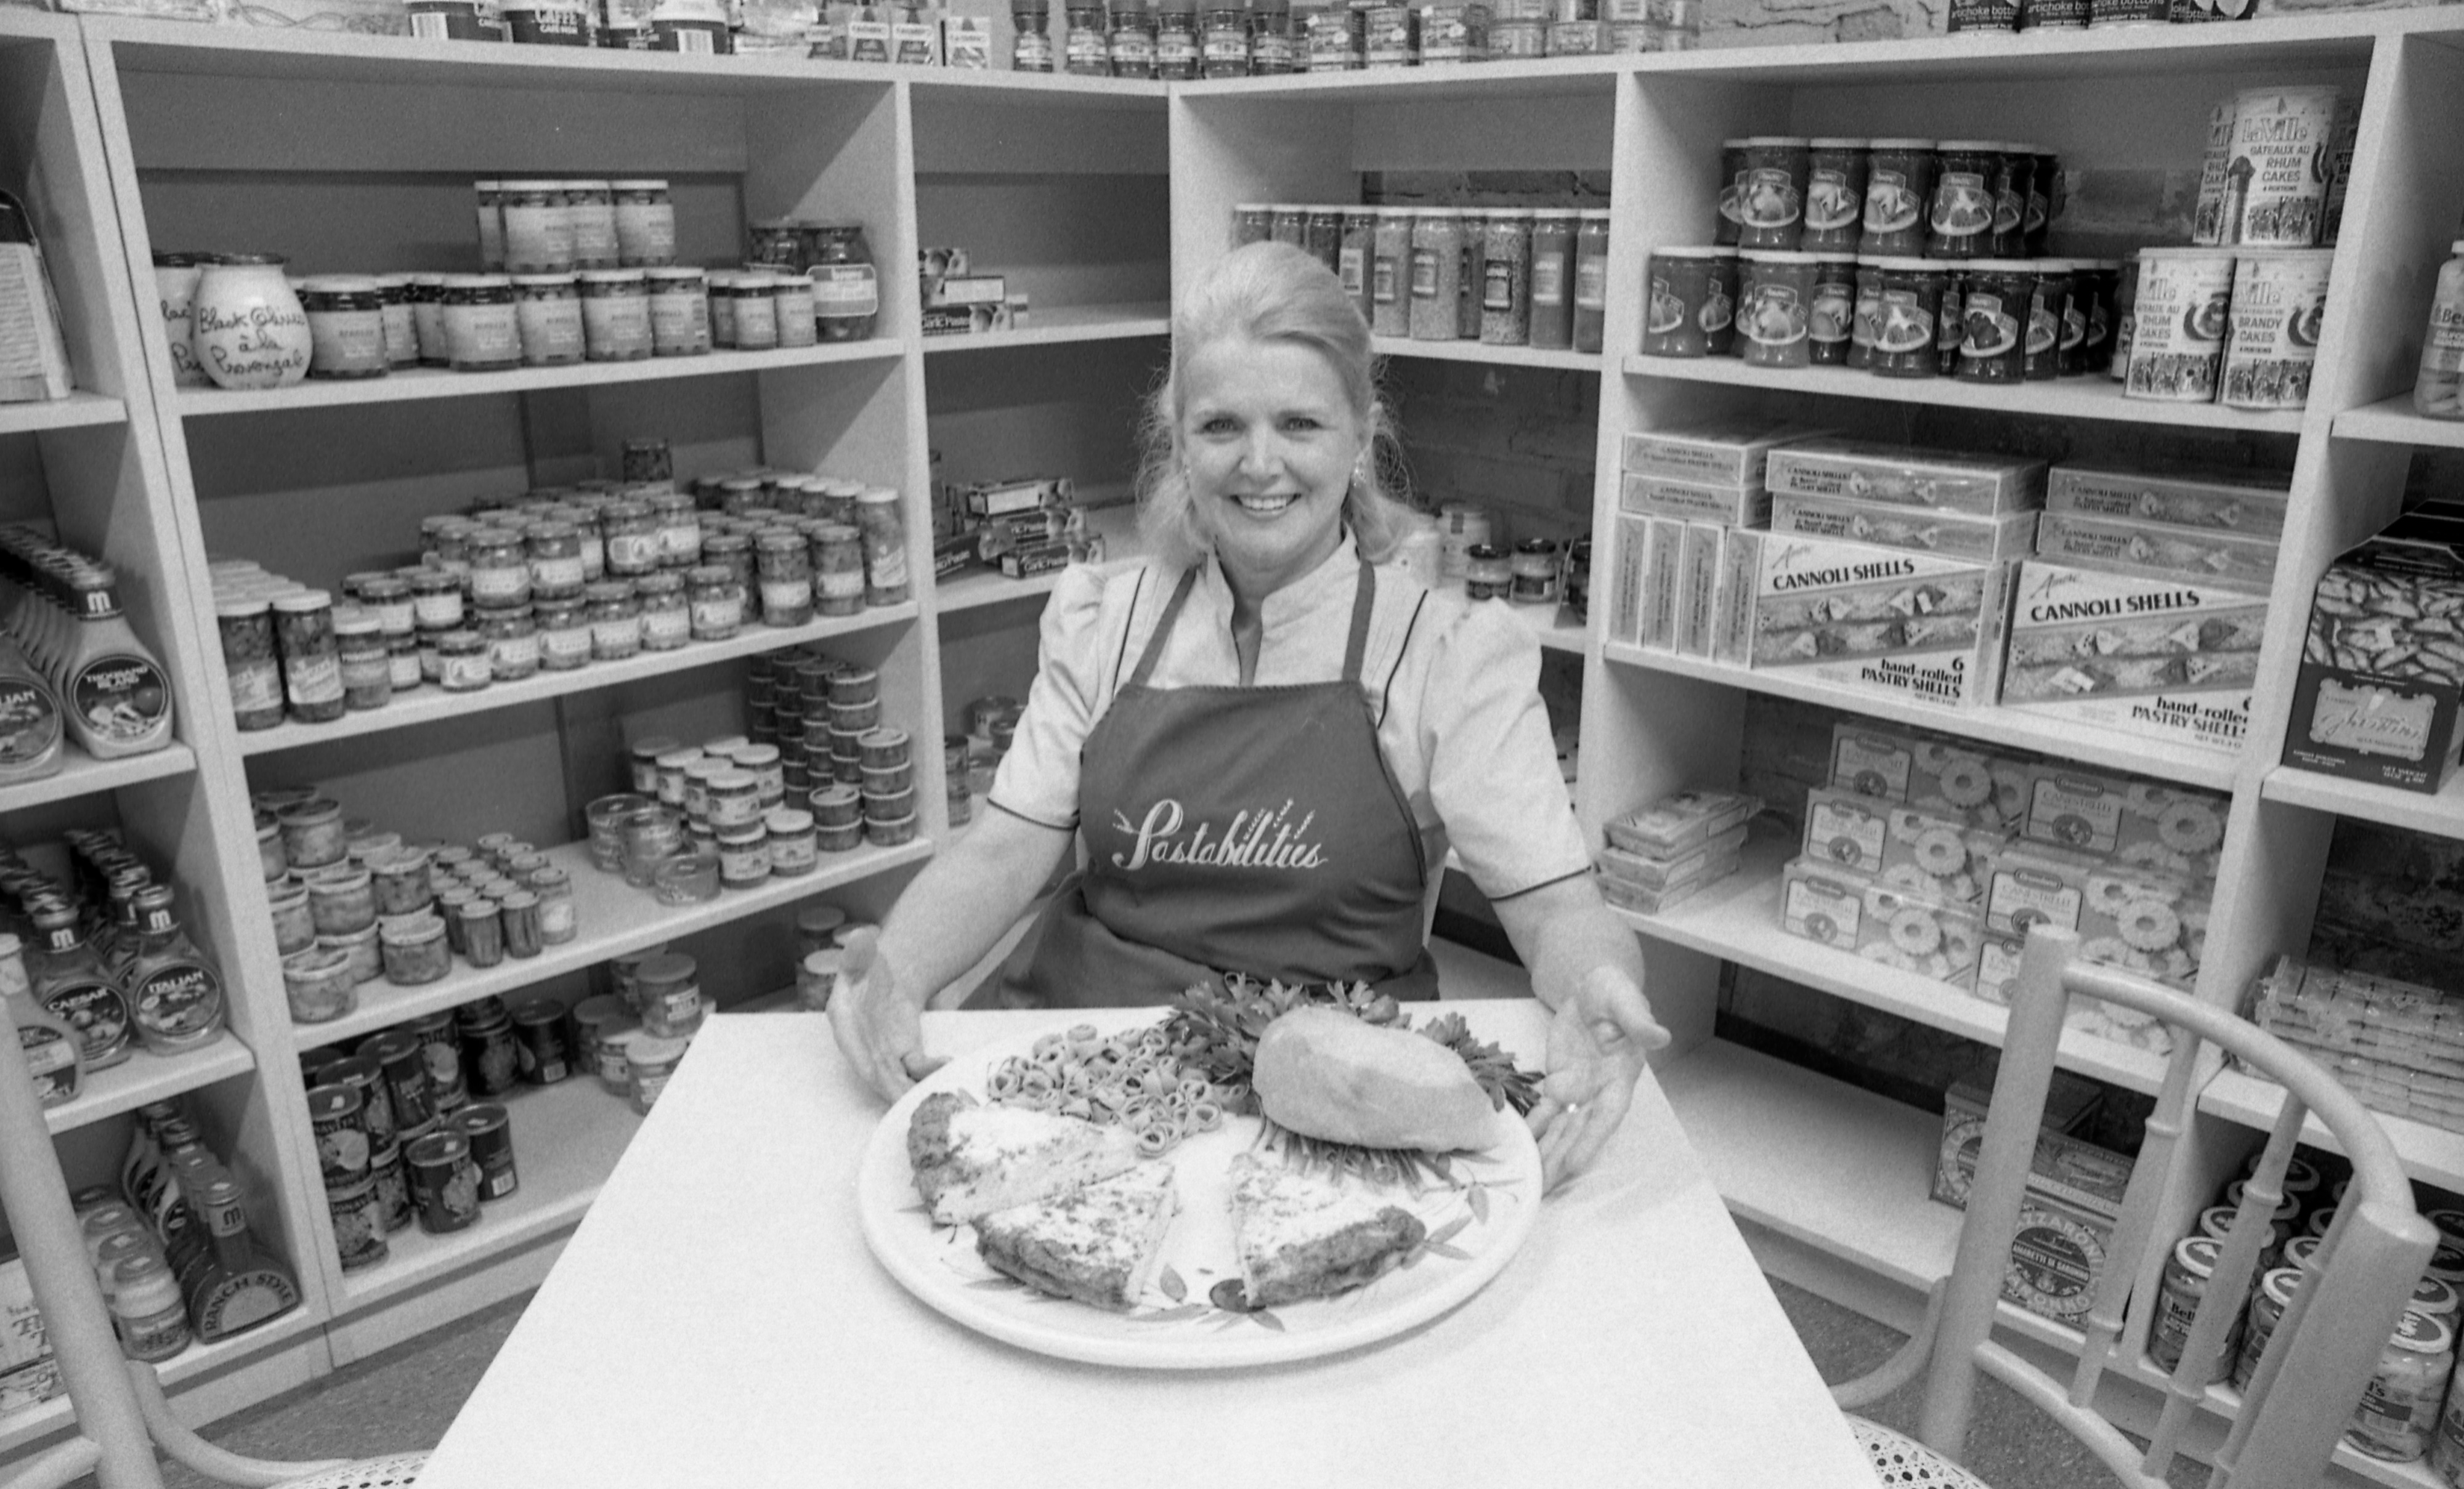 Marguerite Oliver Of Pastabilities With A Tray Of Food, July 1984 image